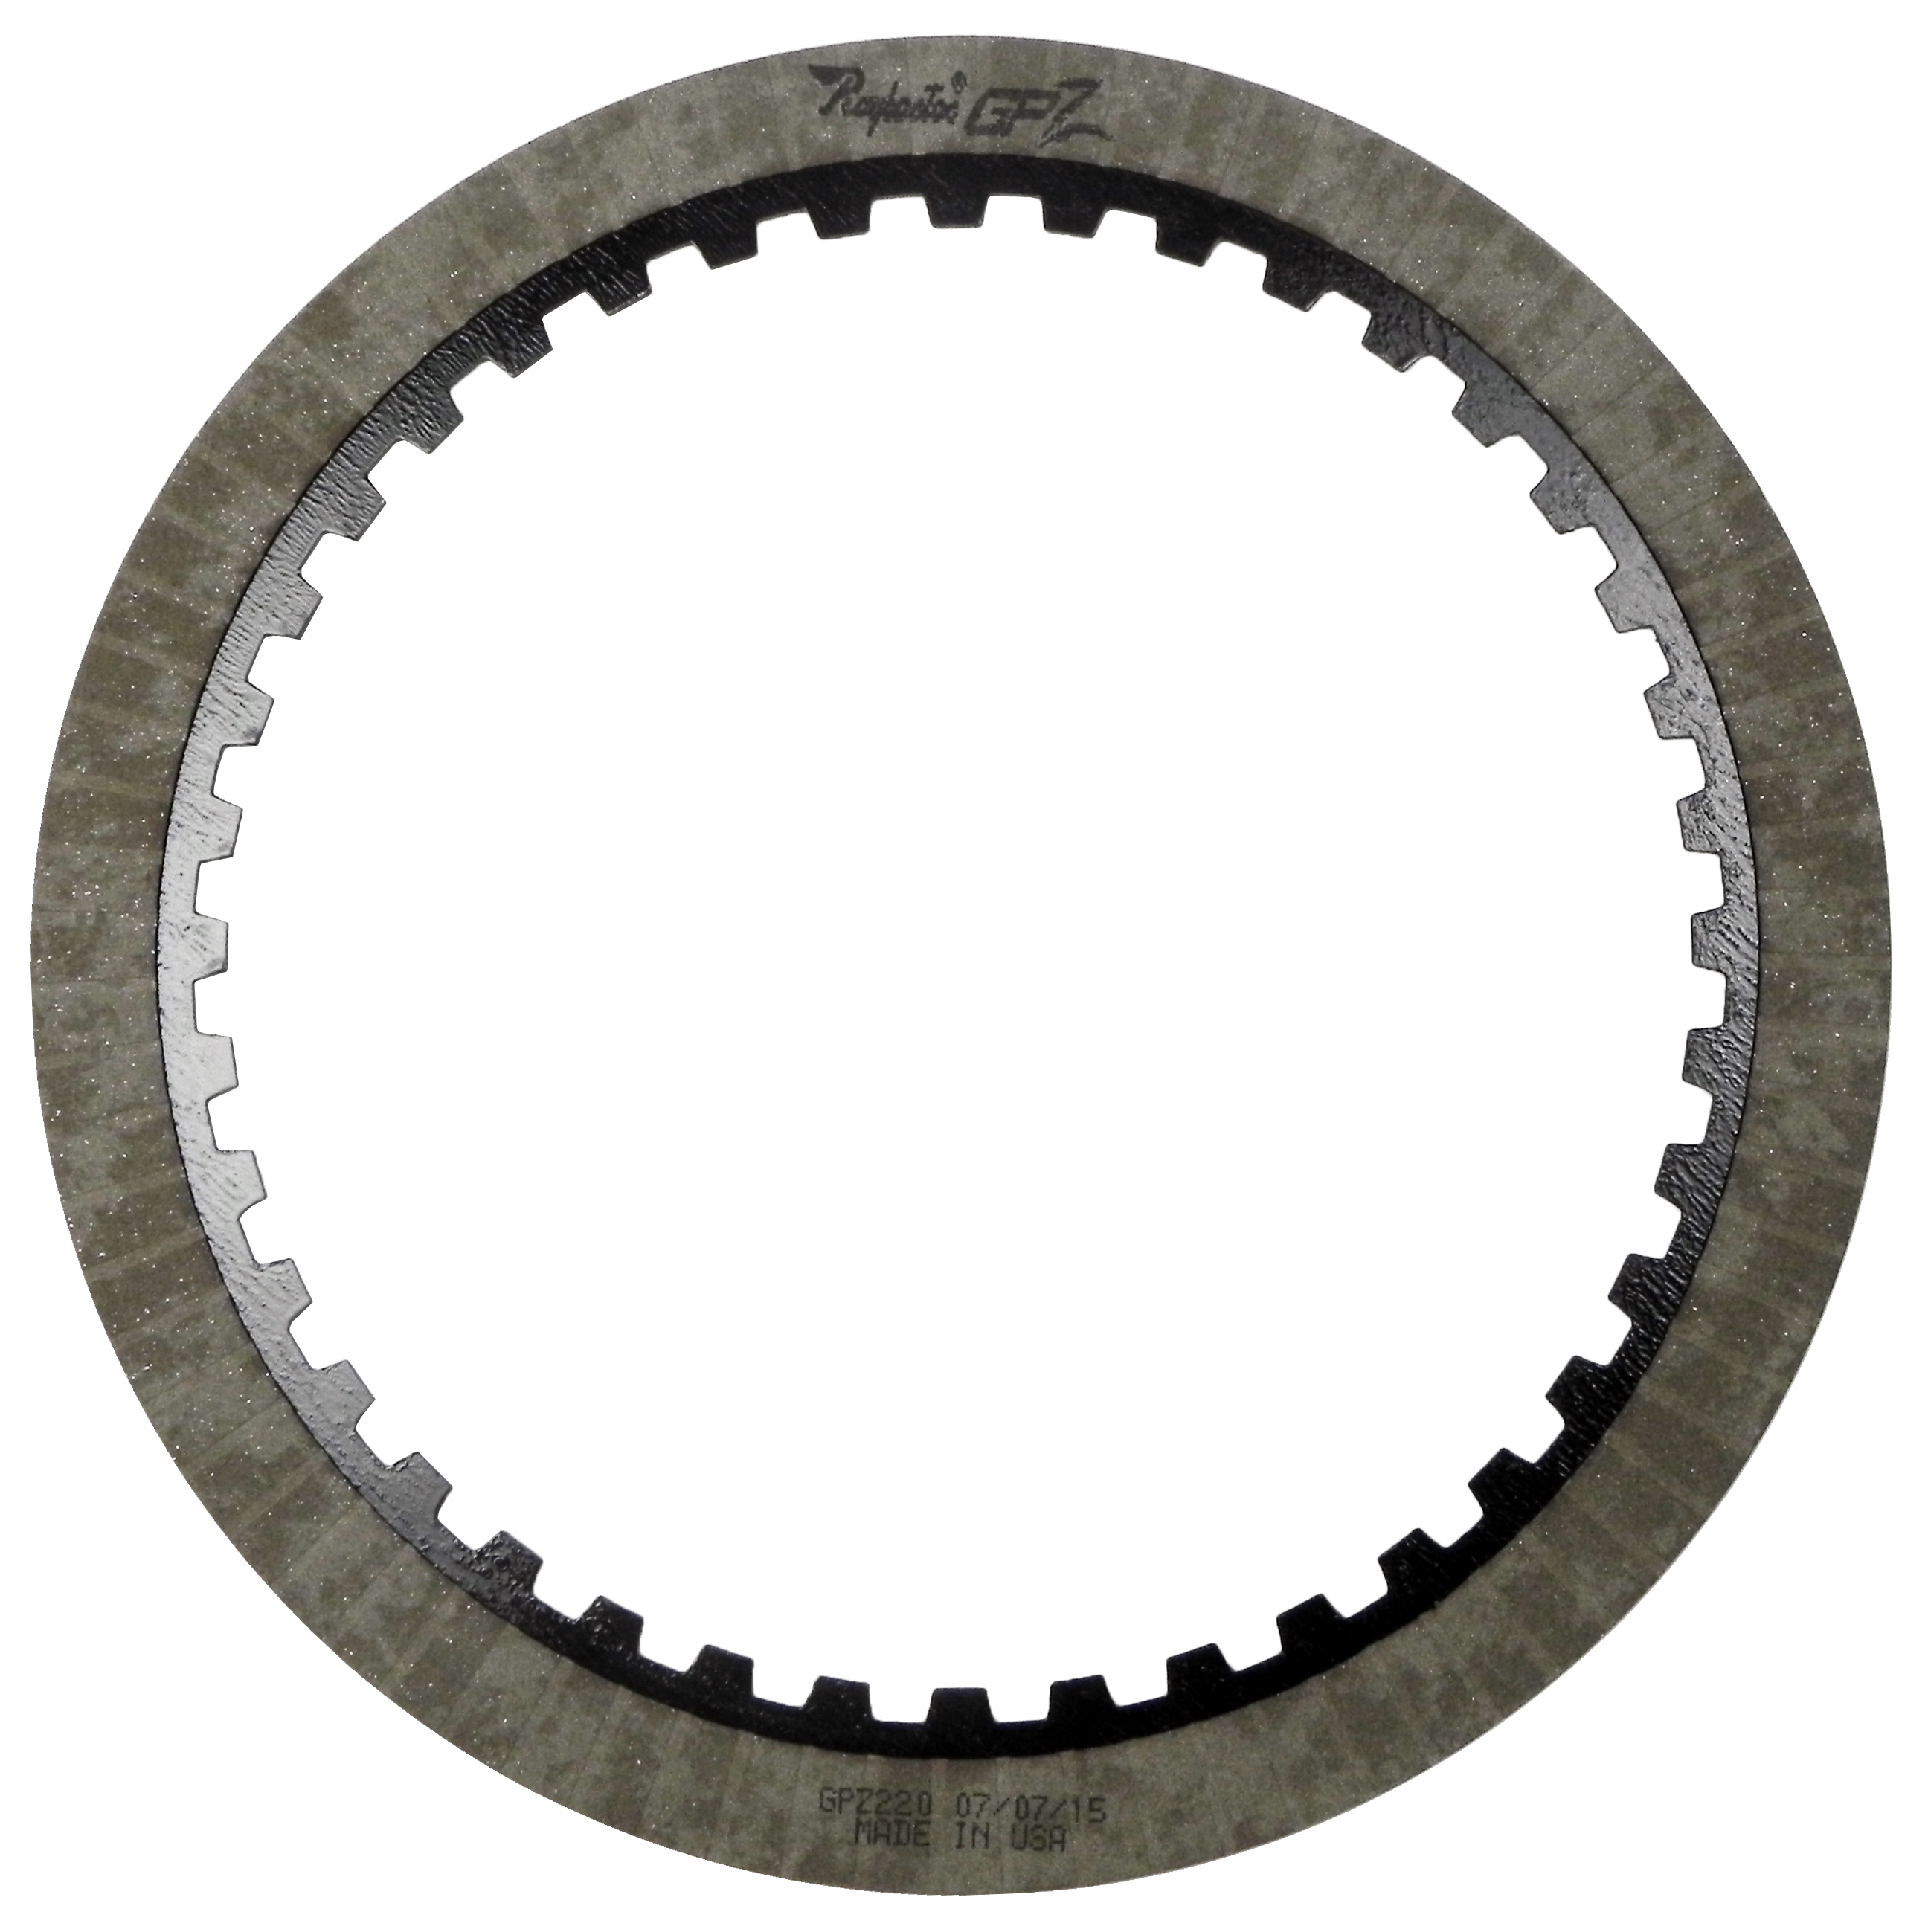 45RFE, 545RFE, 68RFE GPZ Friction Clutch Plate